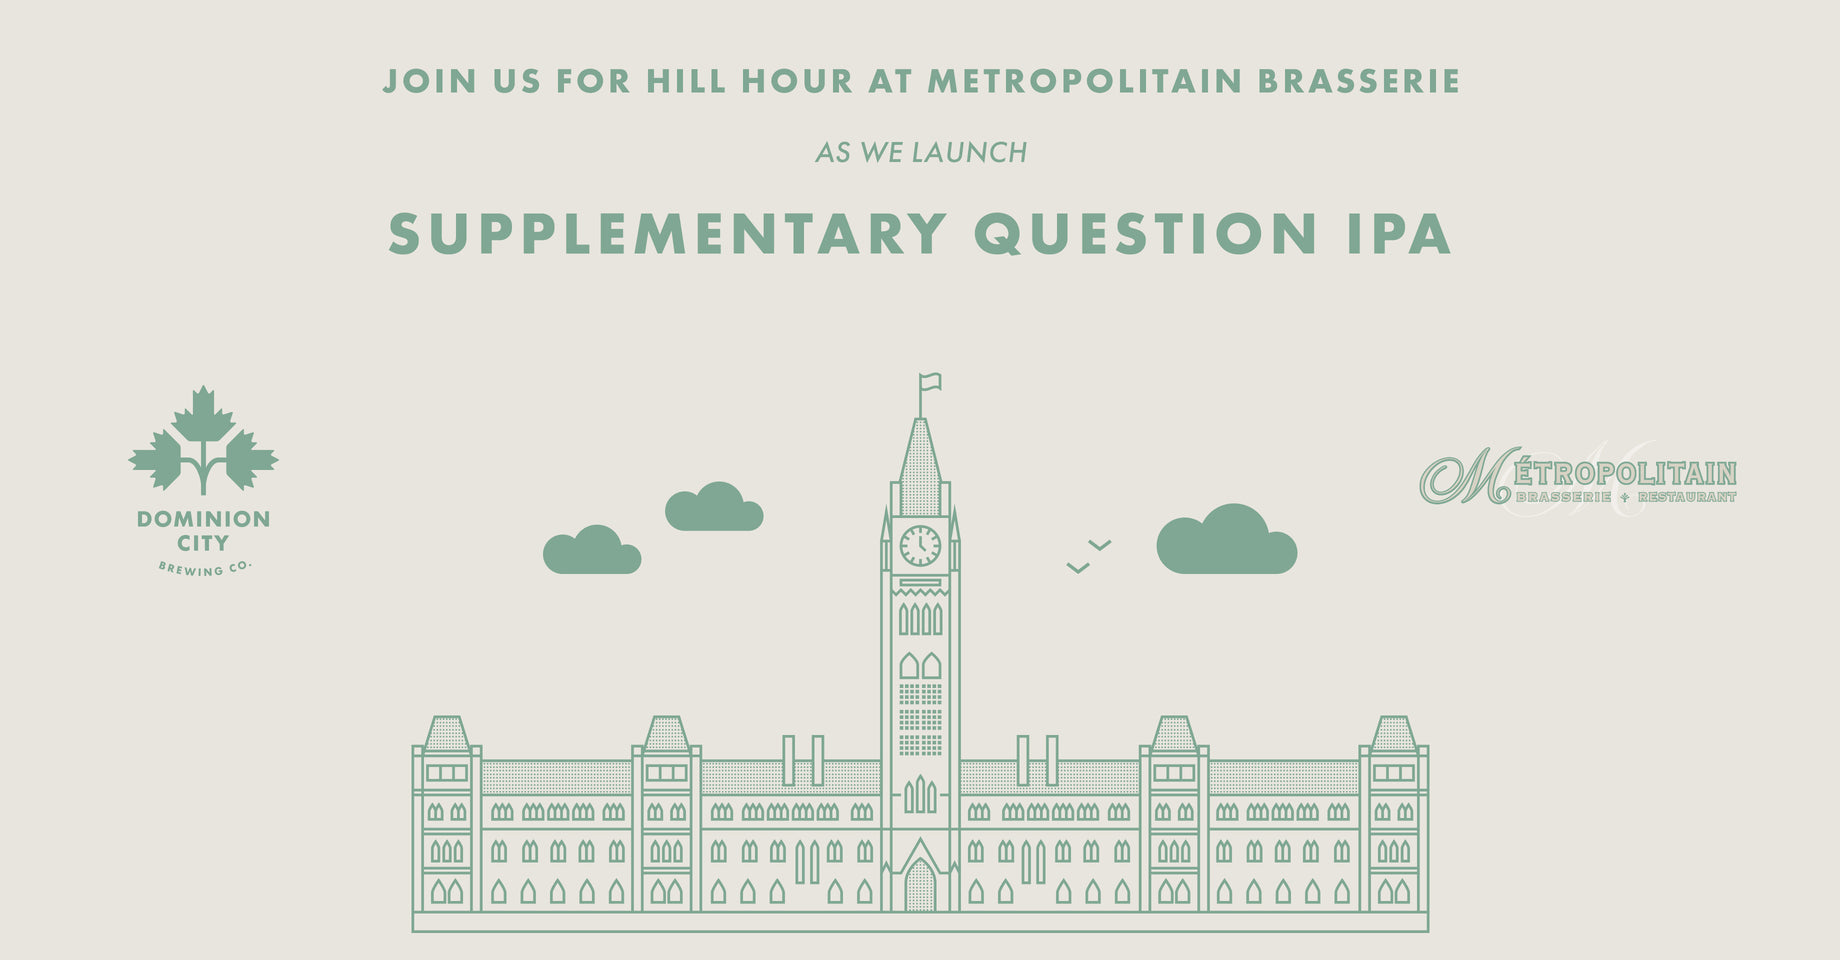 Join us for Hill Hour at Metropolitain Brasserie!